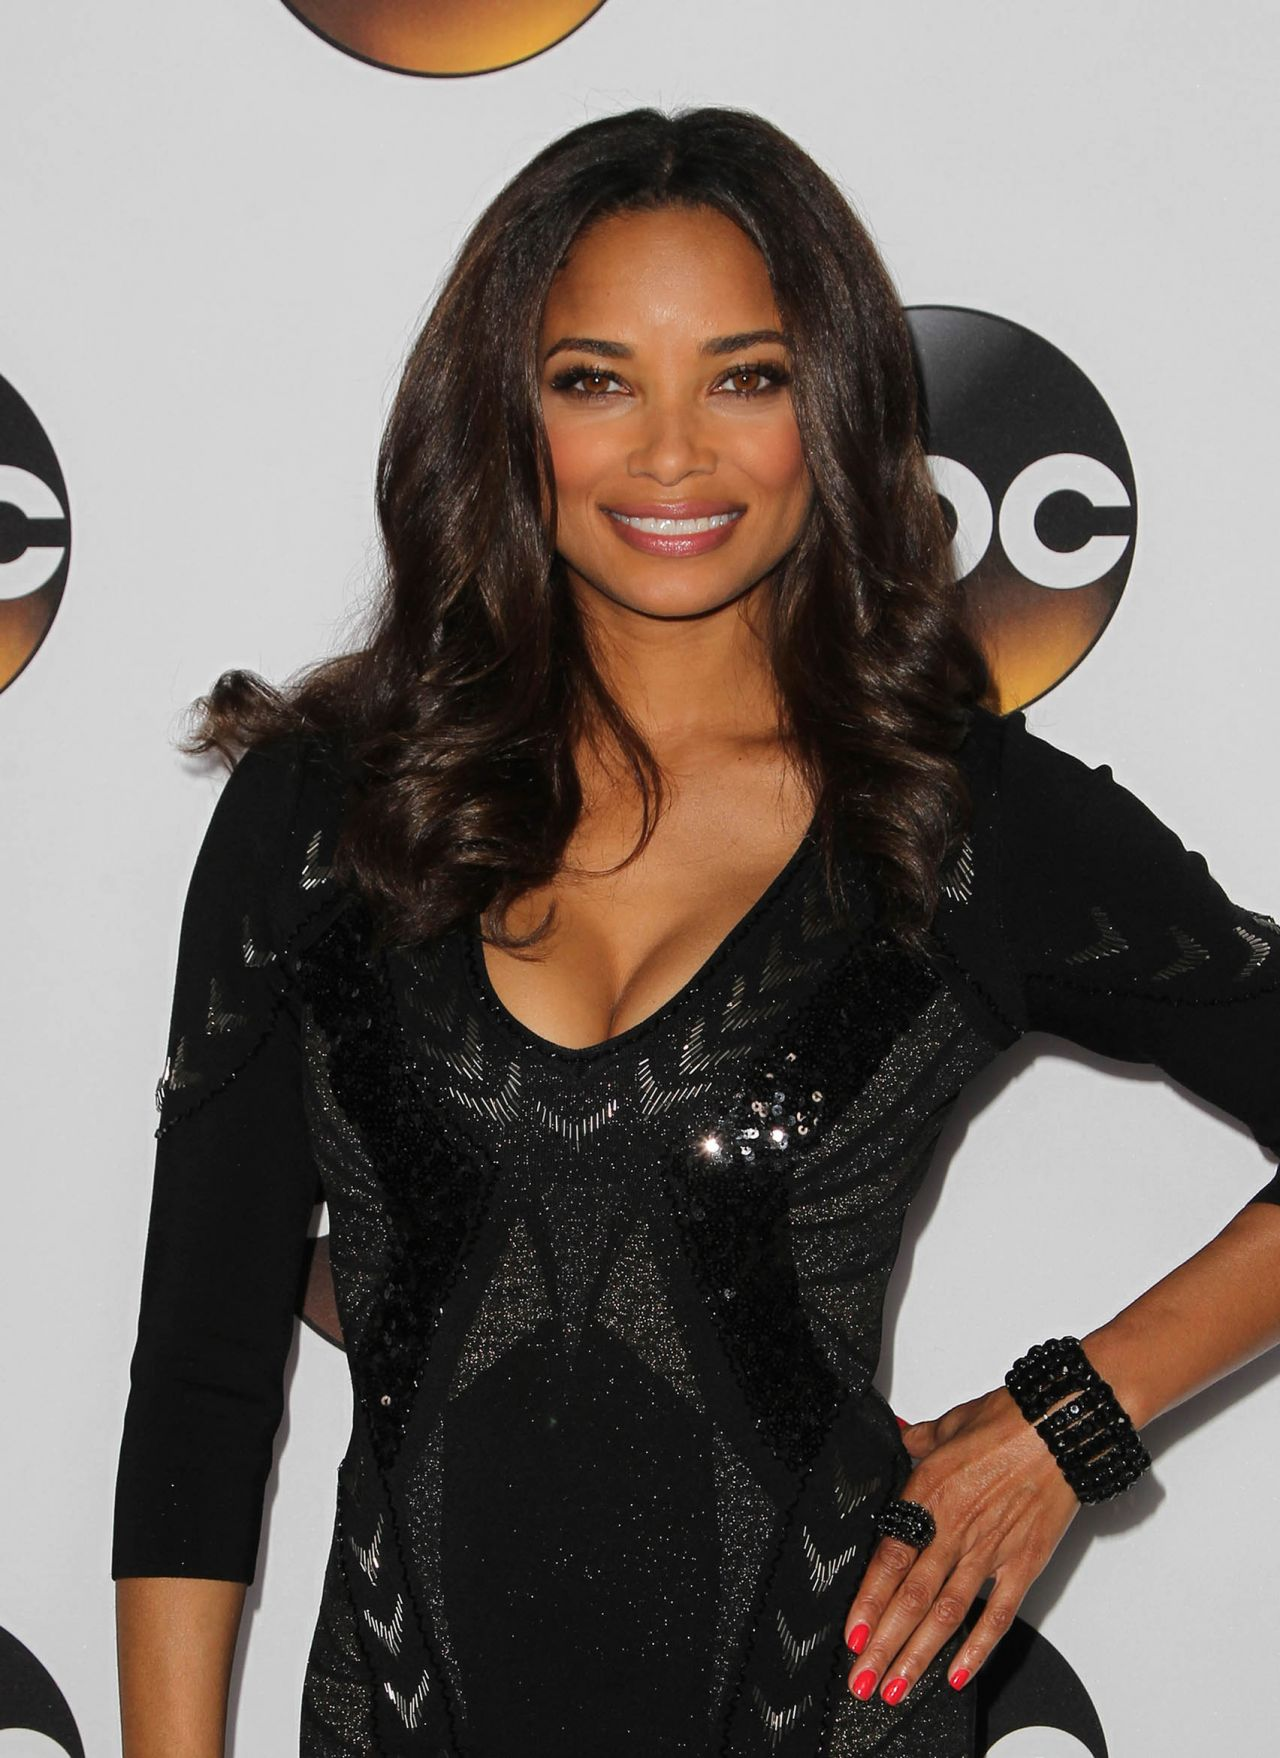 rochelle aytes datingrochelle aytes and shemar moore, rochelle aytes ethnic background, rochelle aytes instagram, rochelle aytes, rochelle aytes husband, rochelle aytes boyfriend, rochelle aytes criminal minds, rochelle aytes movies, rochelle aytes married, rochelle aytes ethnicity, rochelle aytes net worth, rochelle aytes biography, rochelle aytes origines, rochelle aytes hair, rochelle aytes dating